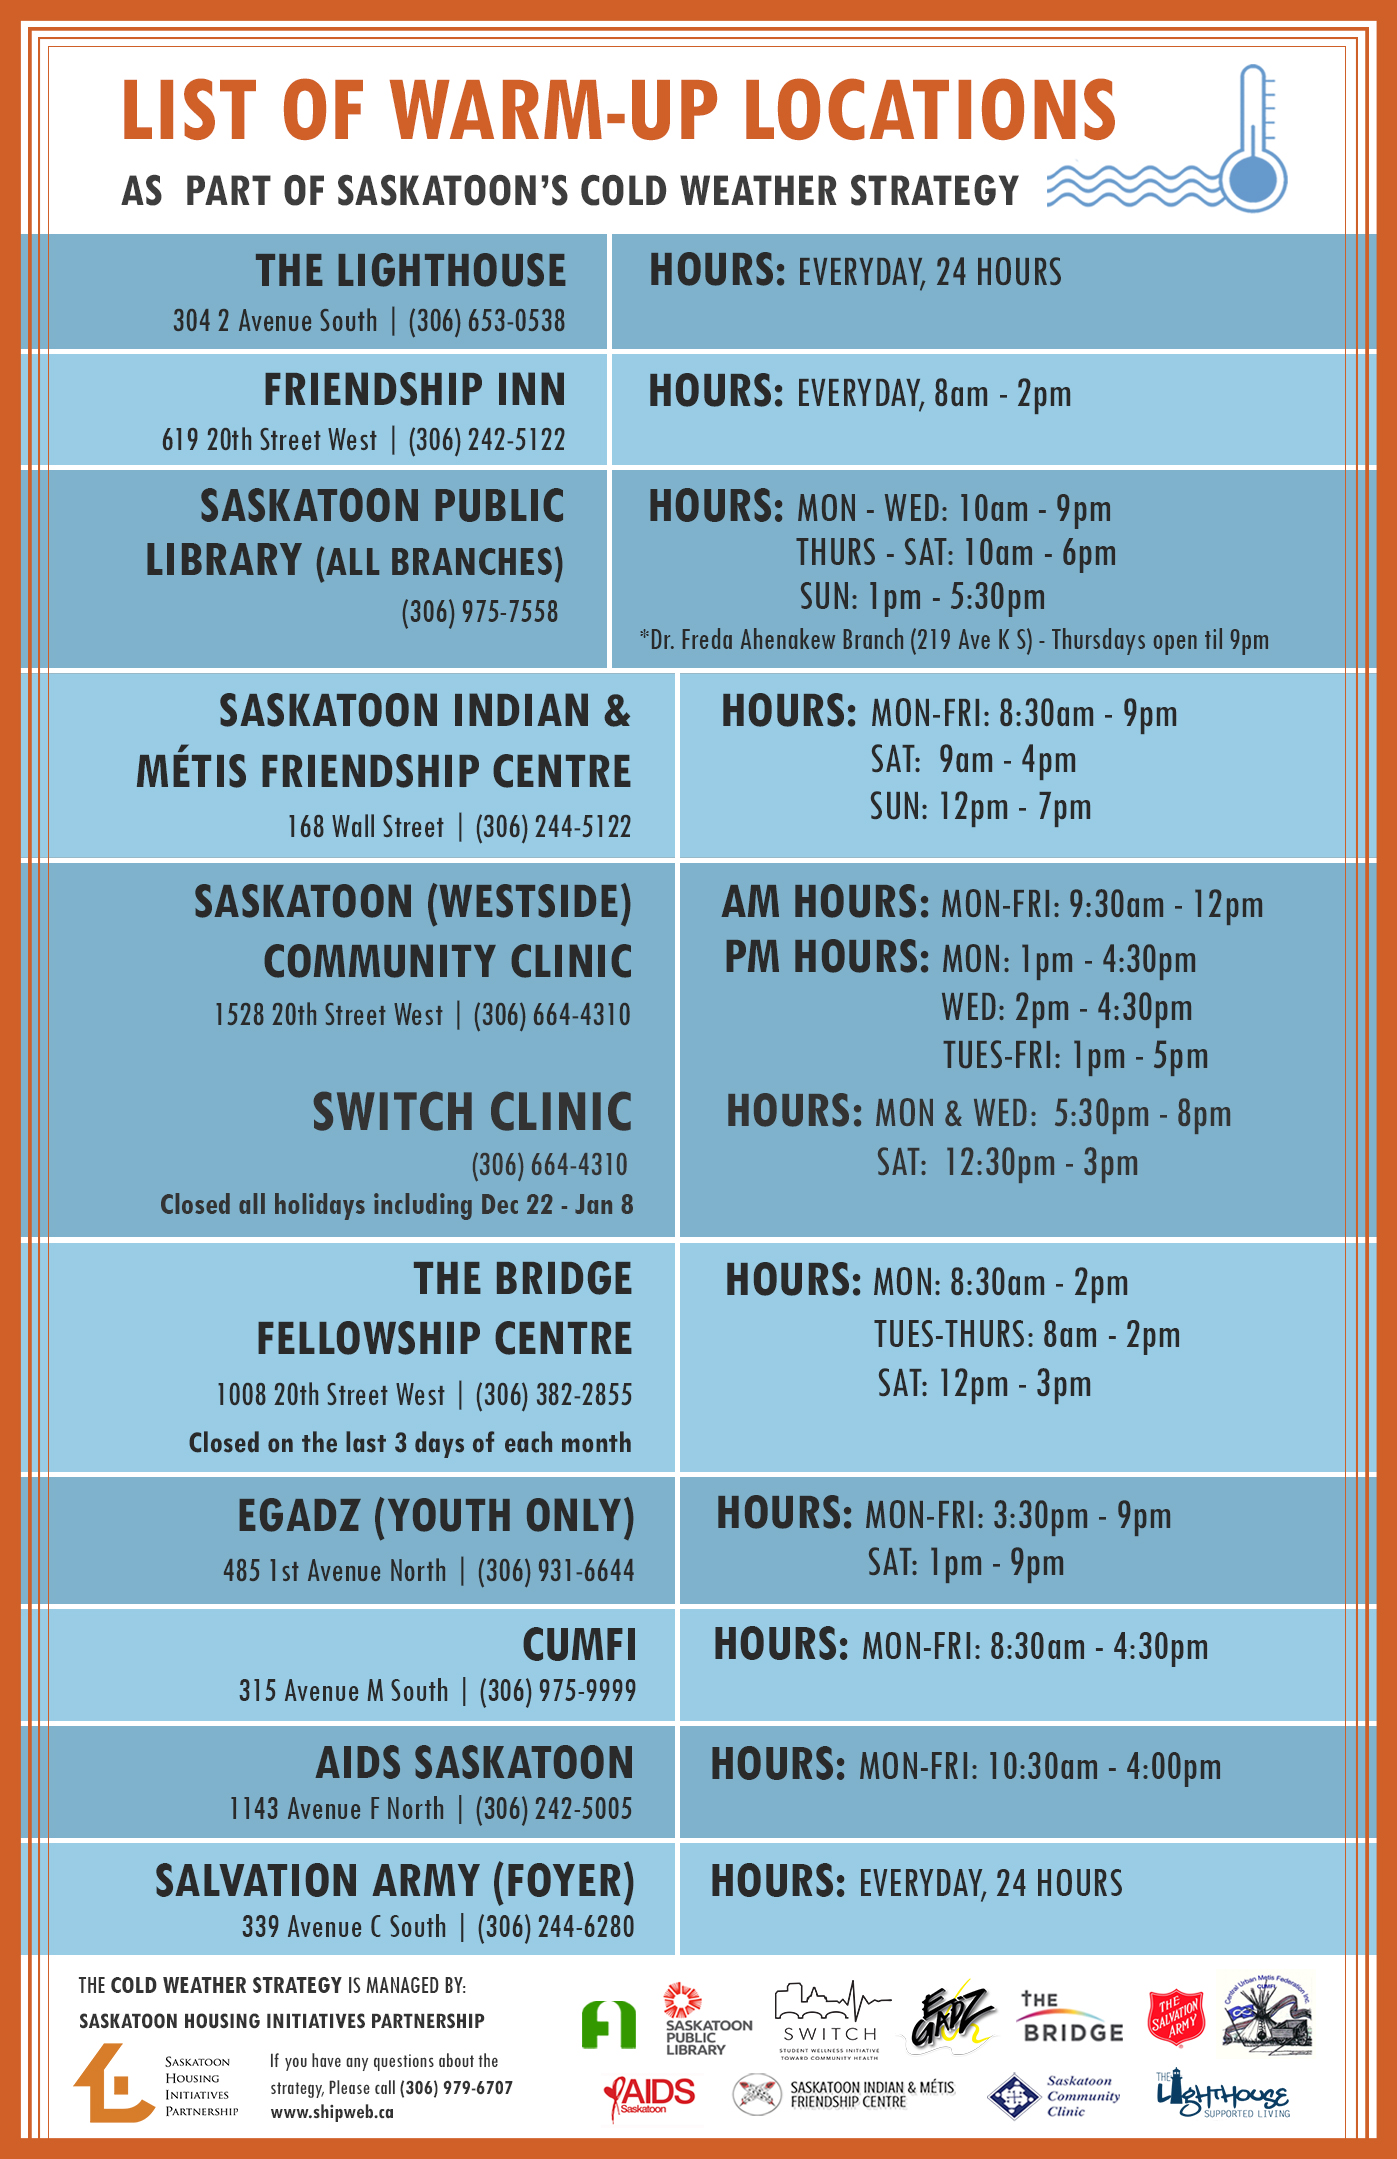 WARM-UP LOCATIONS - Homeless individuals and families can warm-up during the winter at these locations.